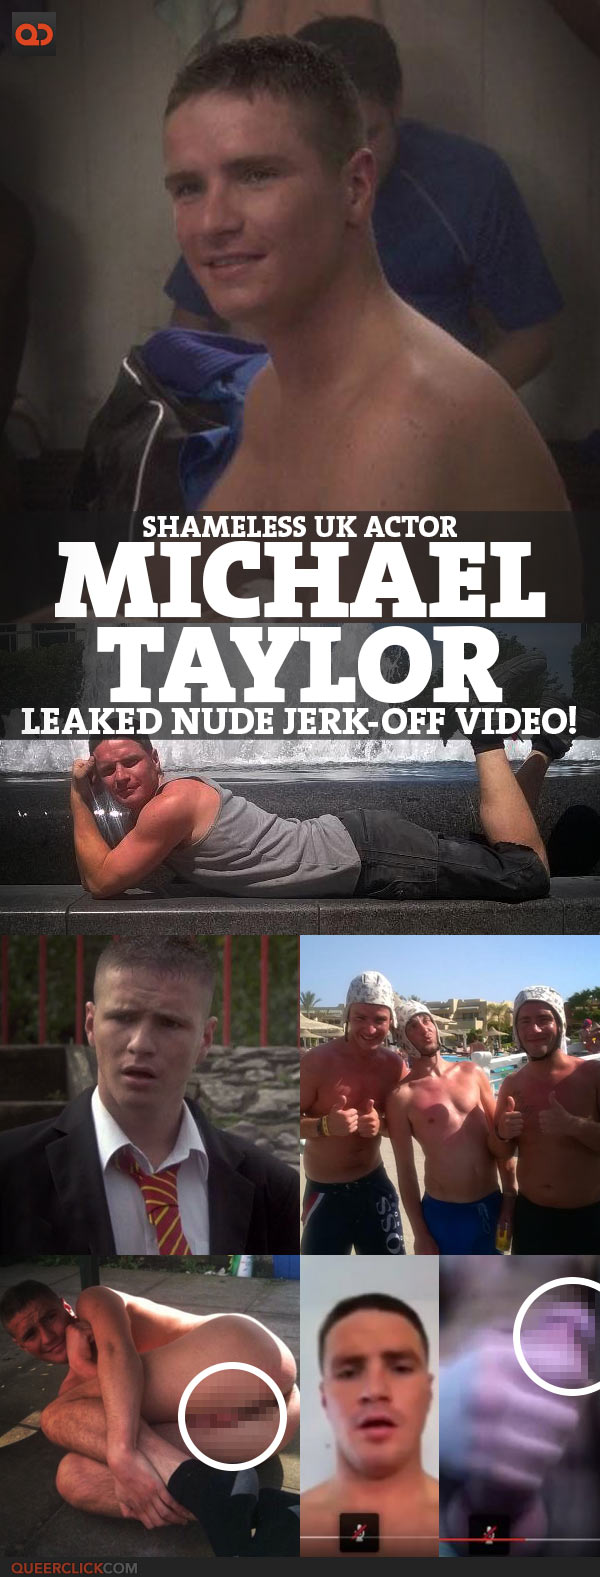 Michael Taylor, Shameless UK Actor, Leaked Nude Jerk-Off Video!